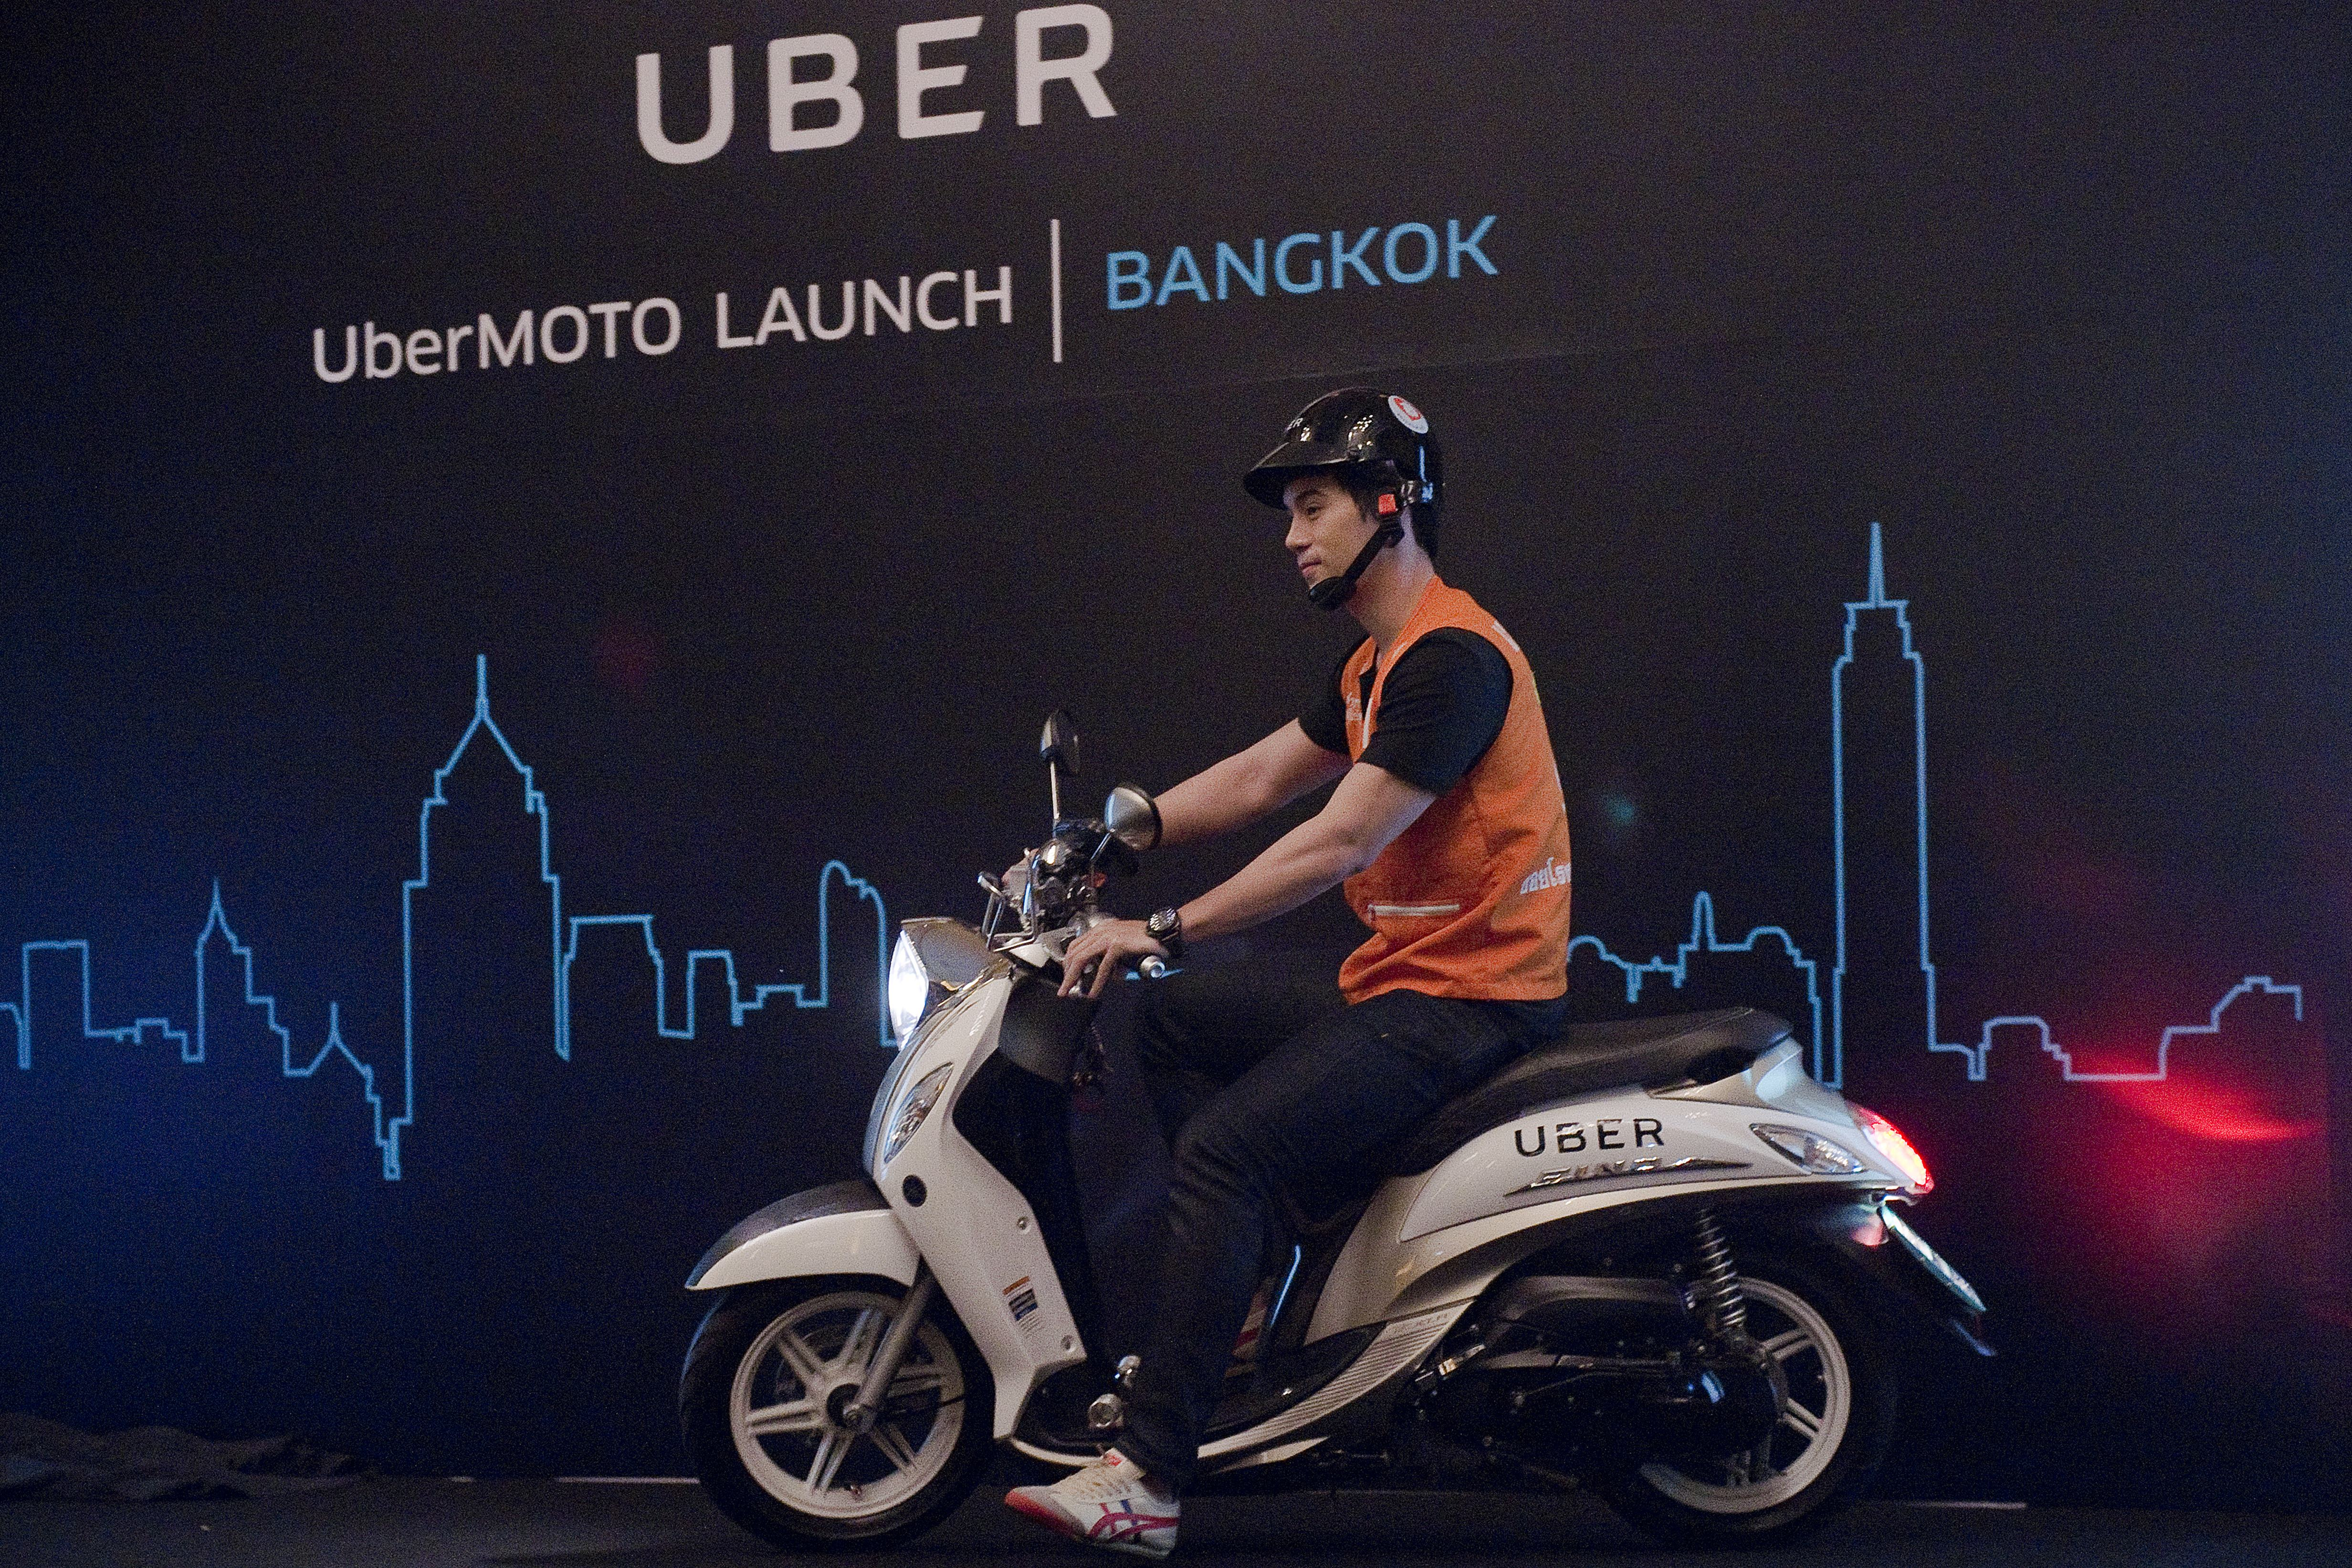 A man drives a motorbike onto a stage during the launch of UberMOTO at a hotel in Bangkok on February 24, 2016.